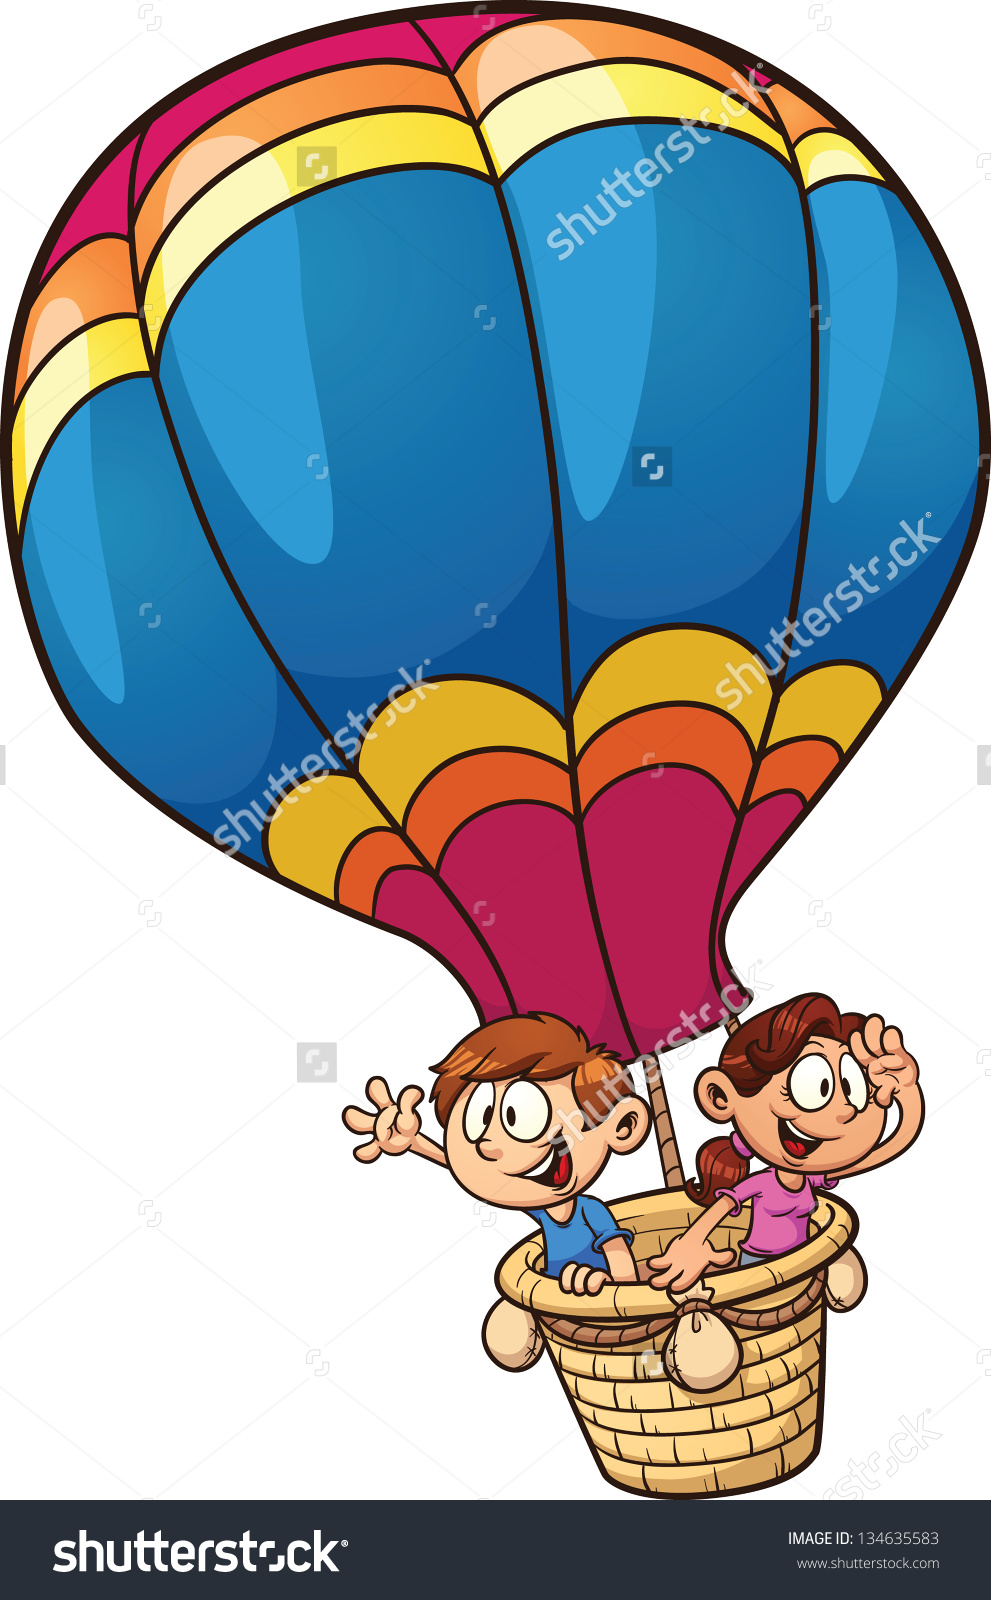 Flying hot air balloon clipart #2